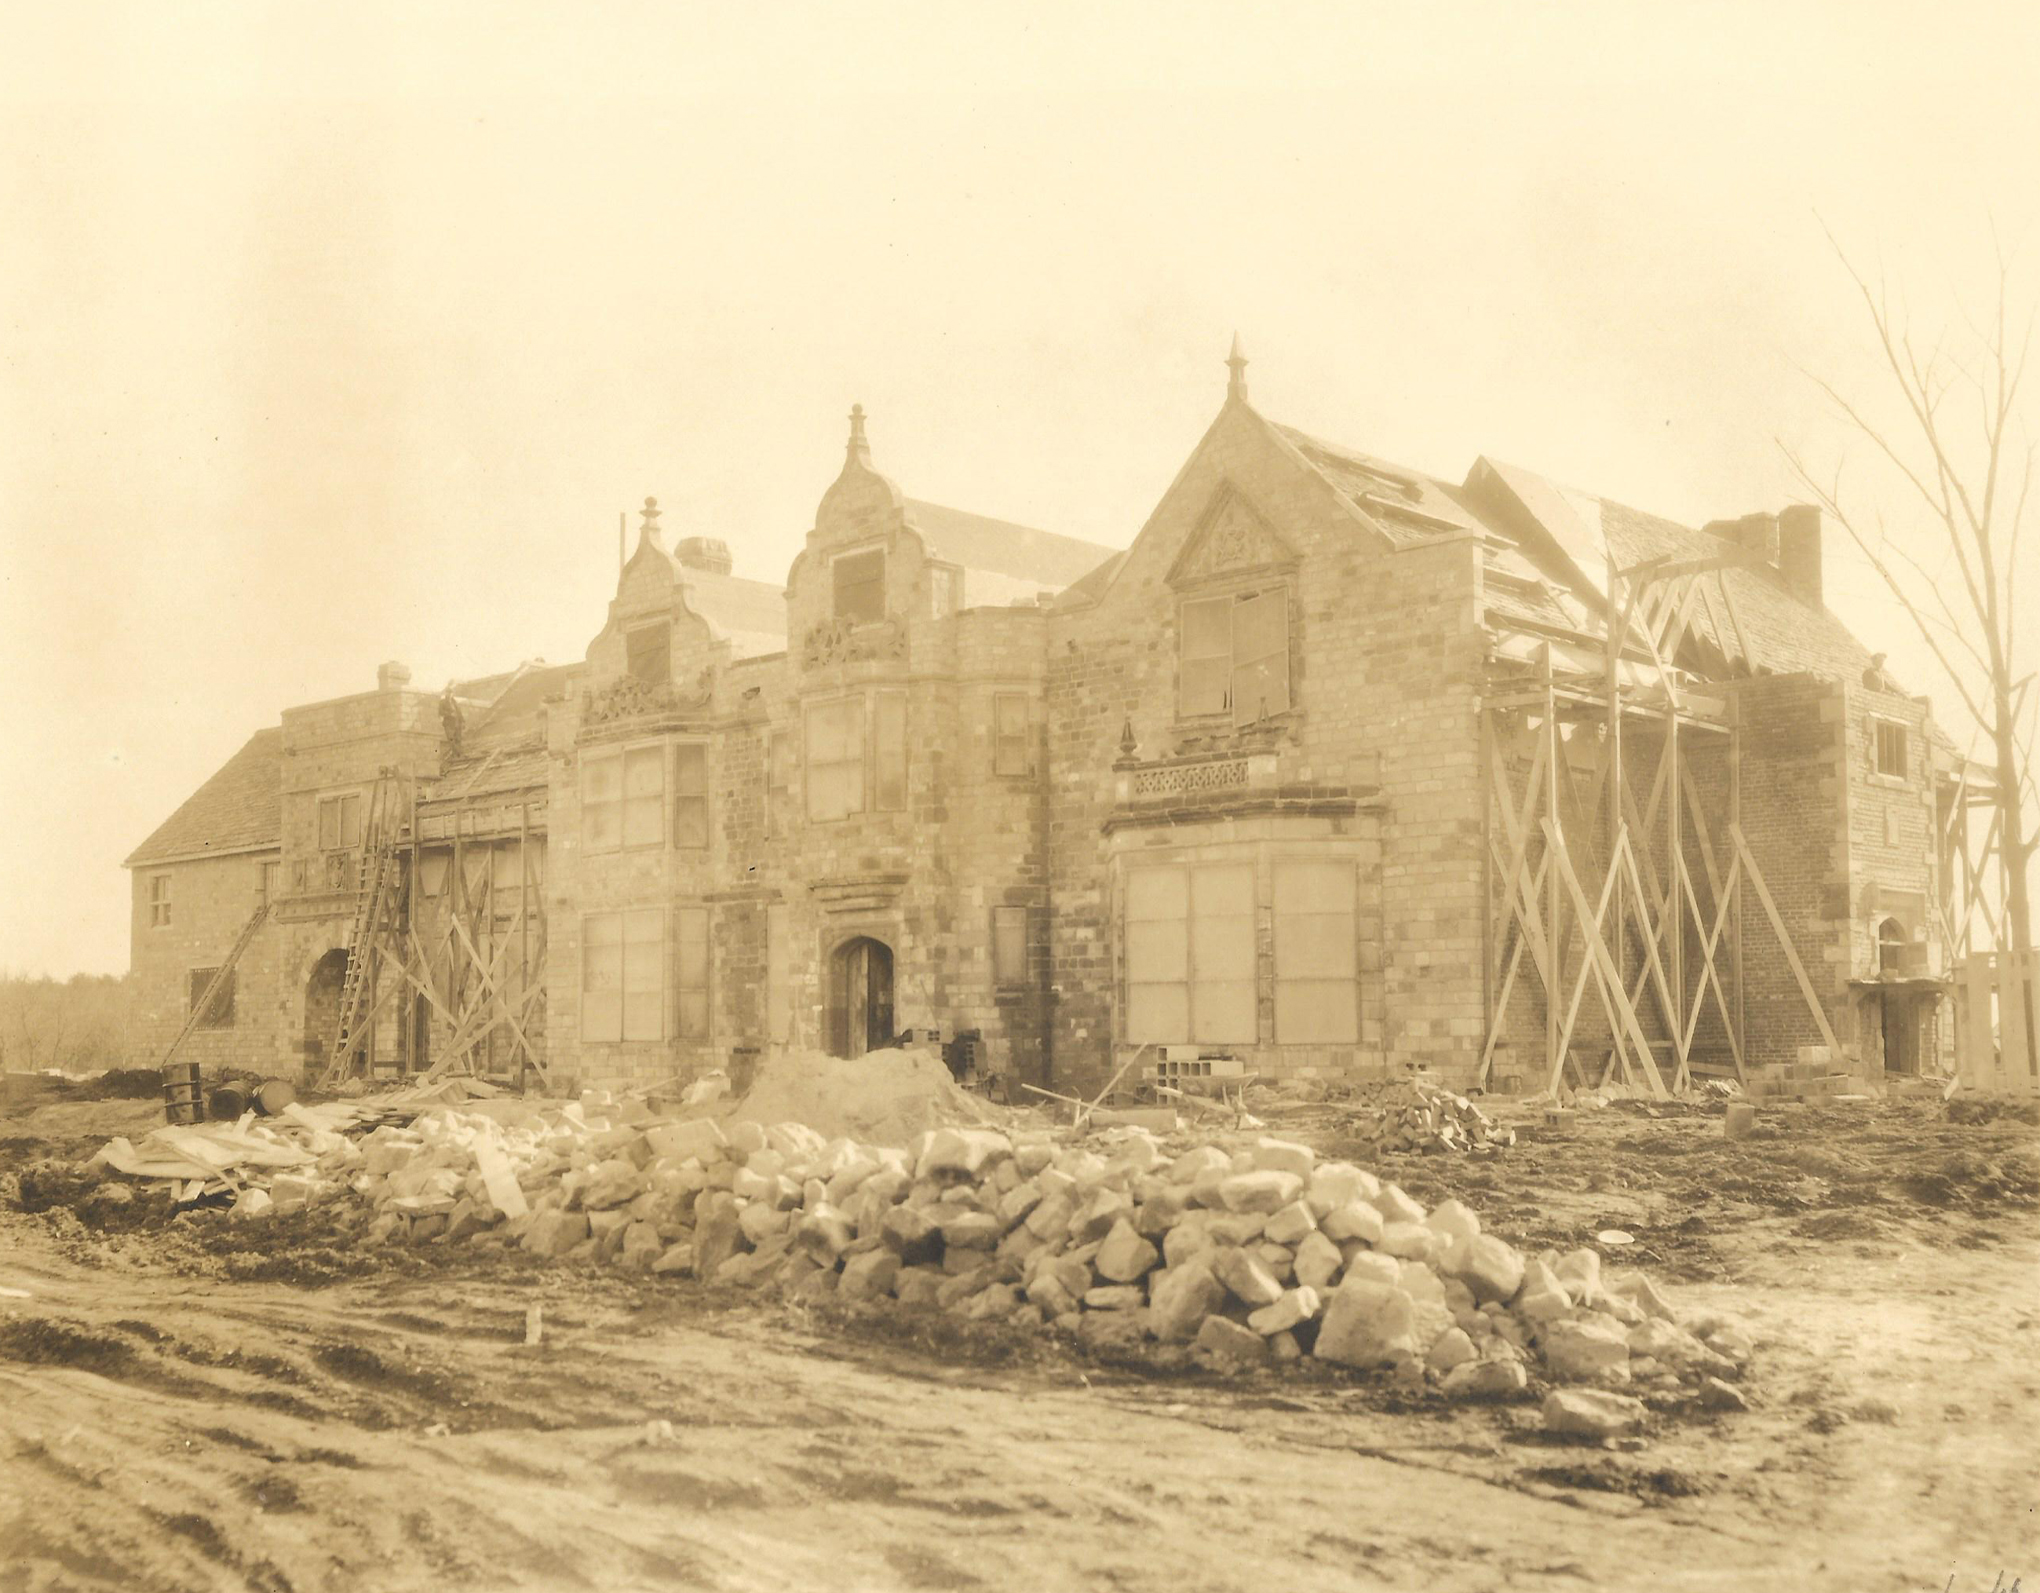 Virginia House Under Construction, Archival Image Courtesy of the Virginia Museum of History and Culture